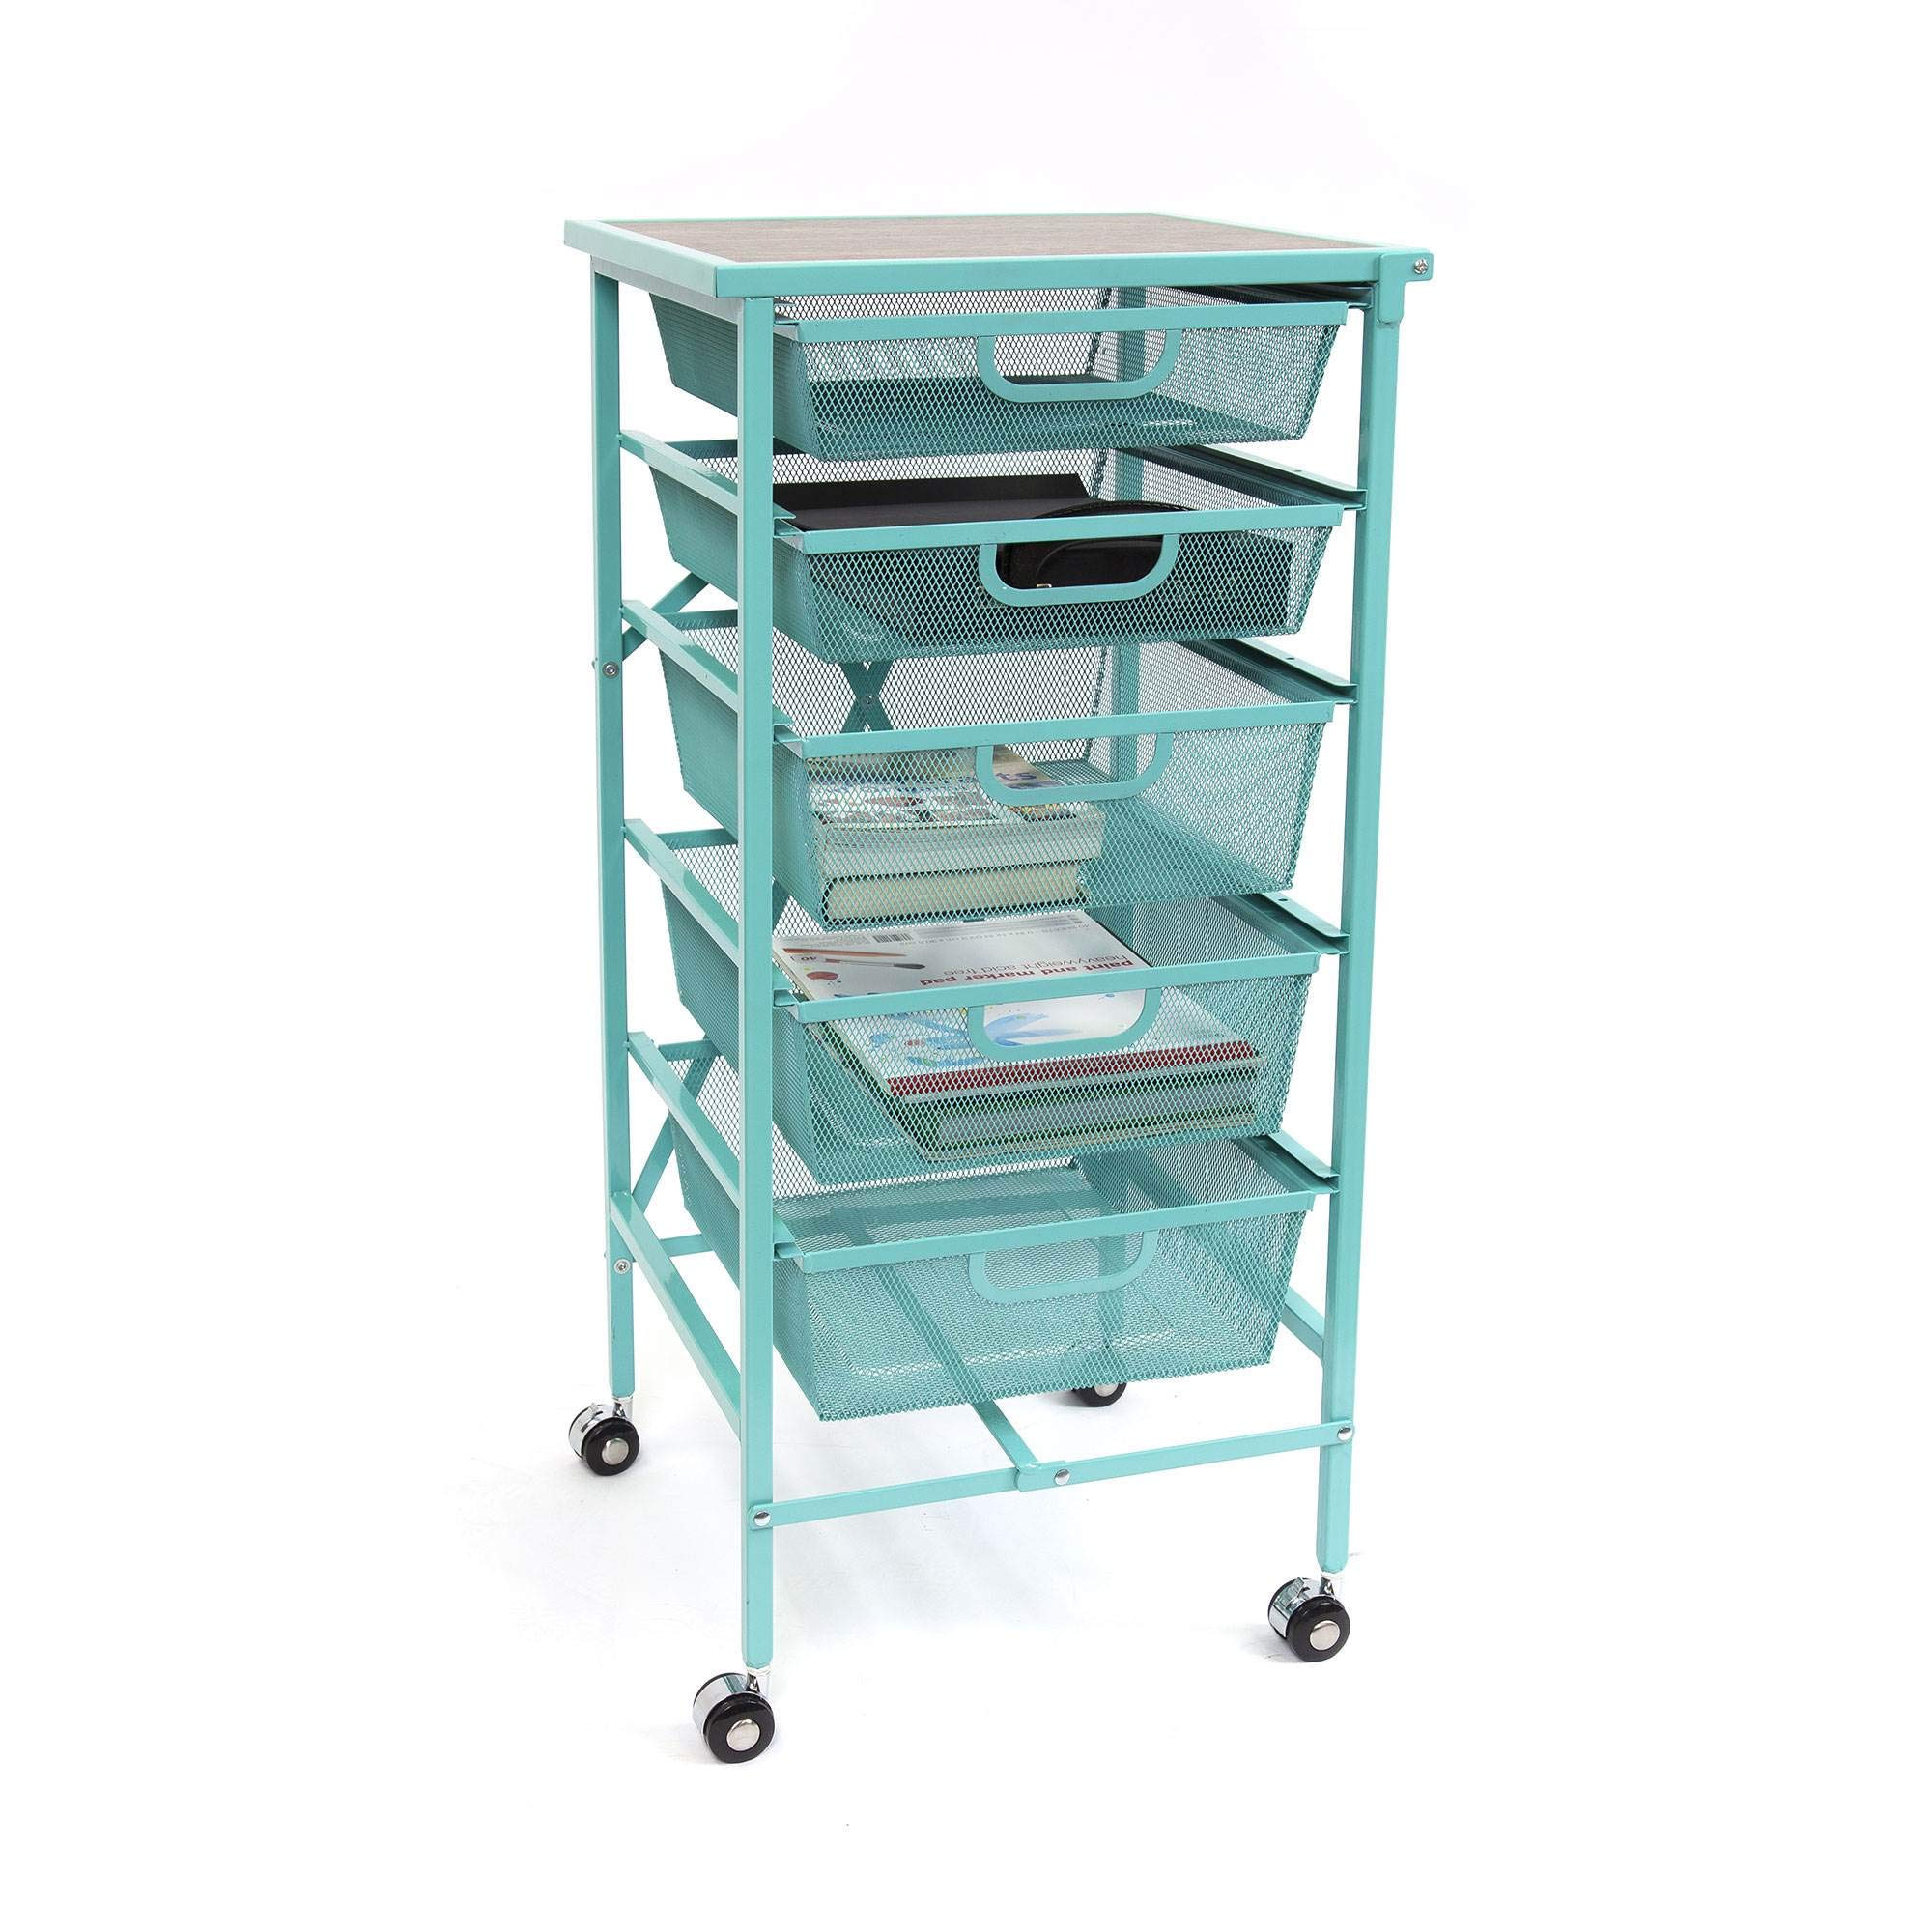 Origami Wheeled Folding Steel 5 Drawer Storage Kitchen Cart Wood Top, Turquoise by Origami